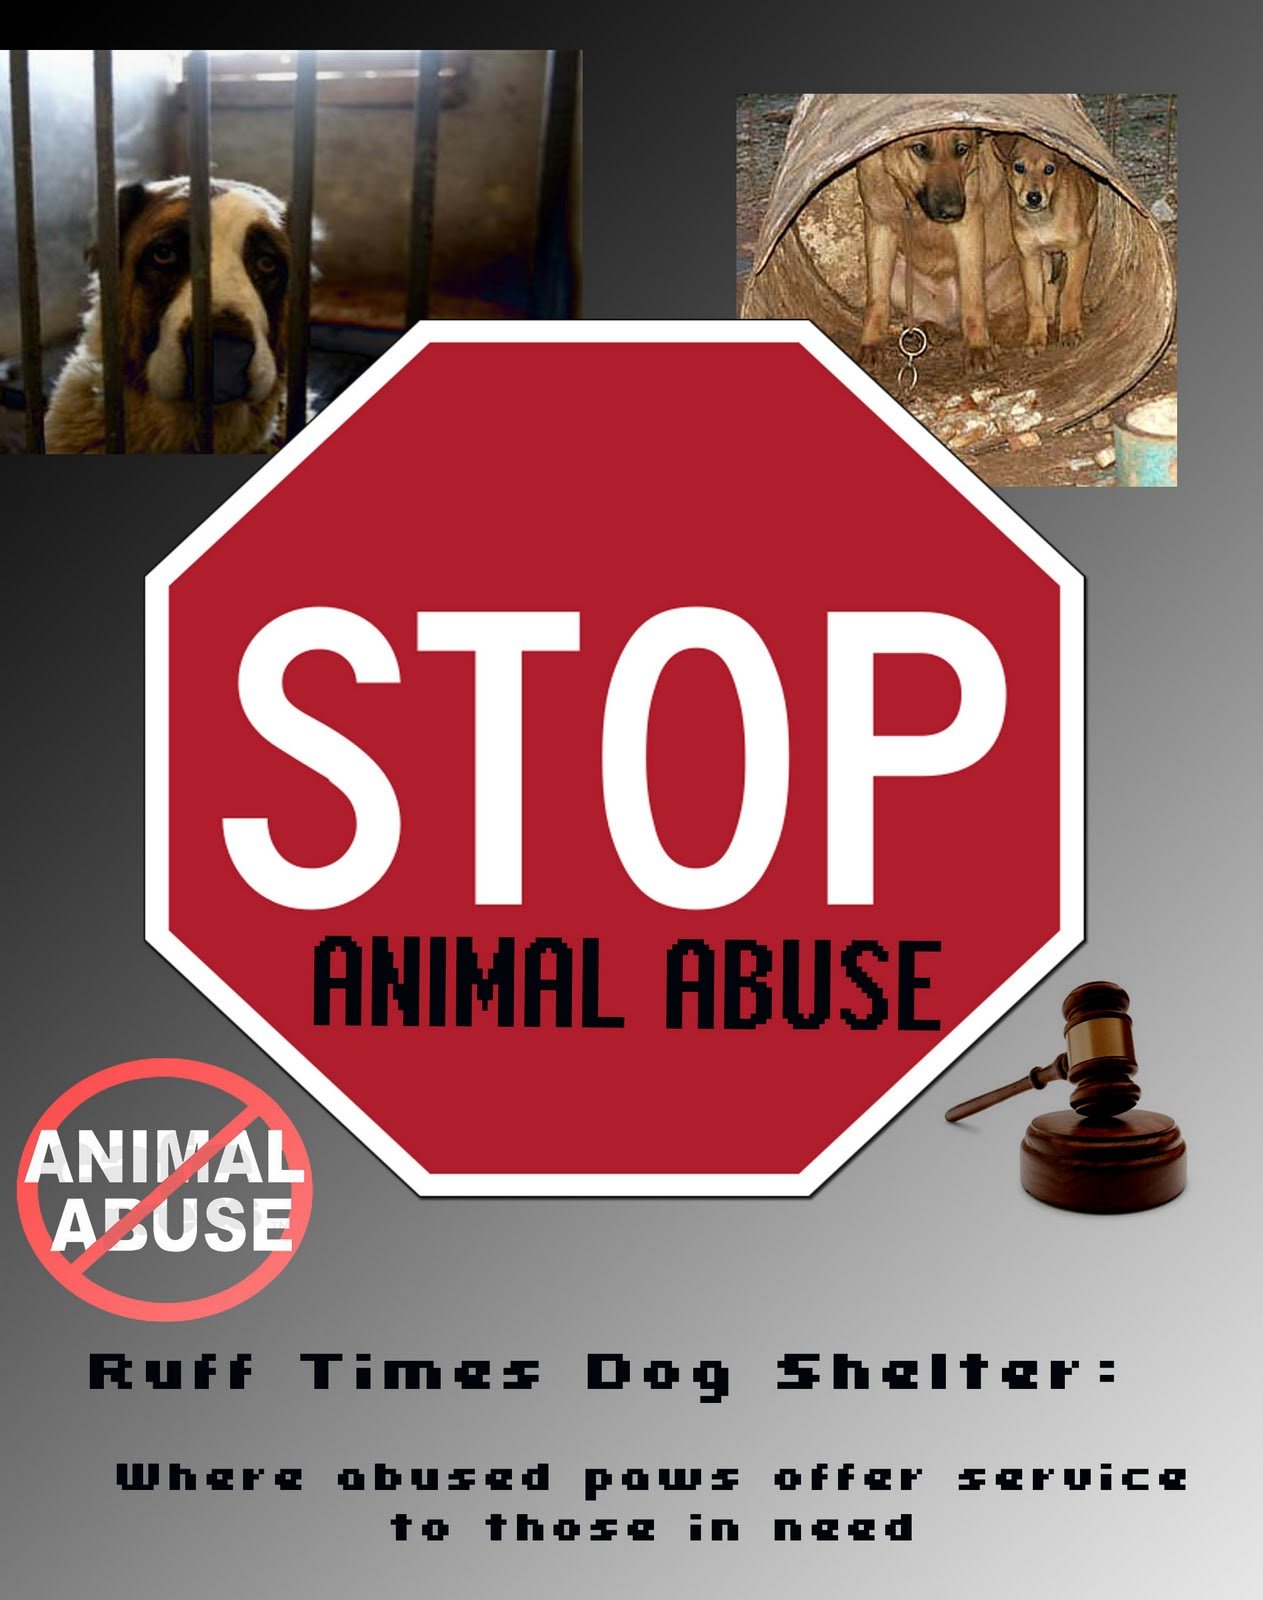 Animal abuse posters - photo#18